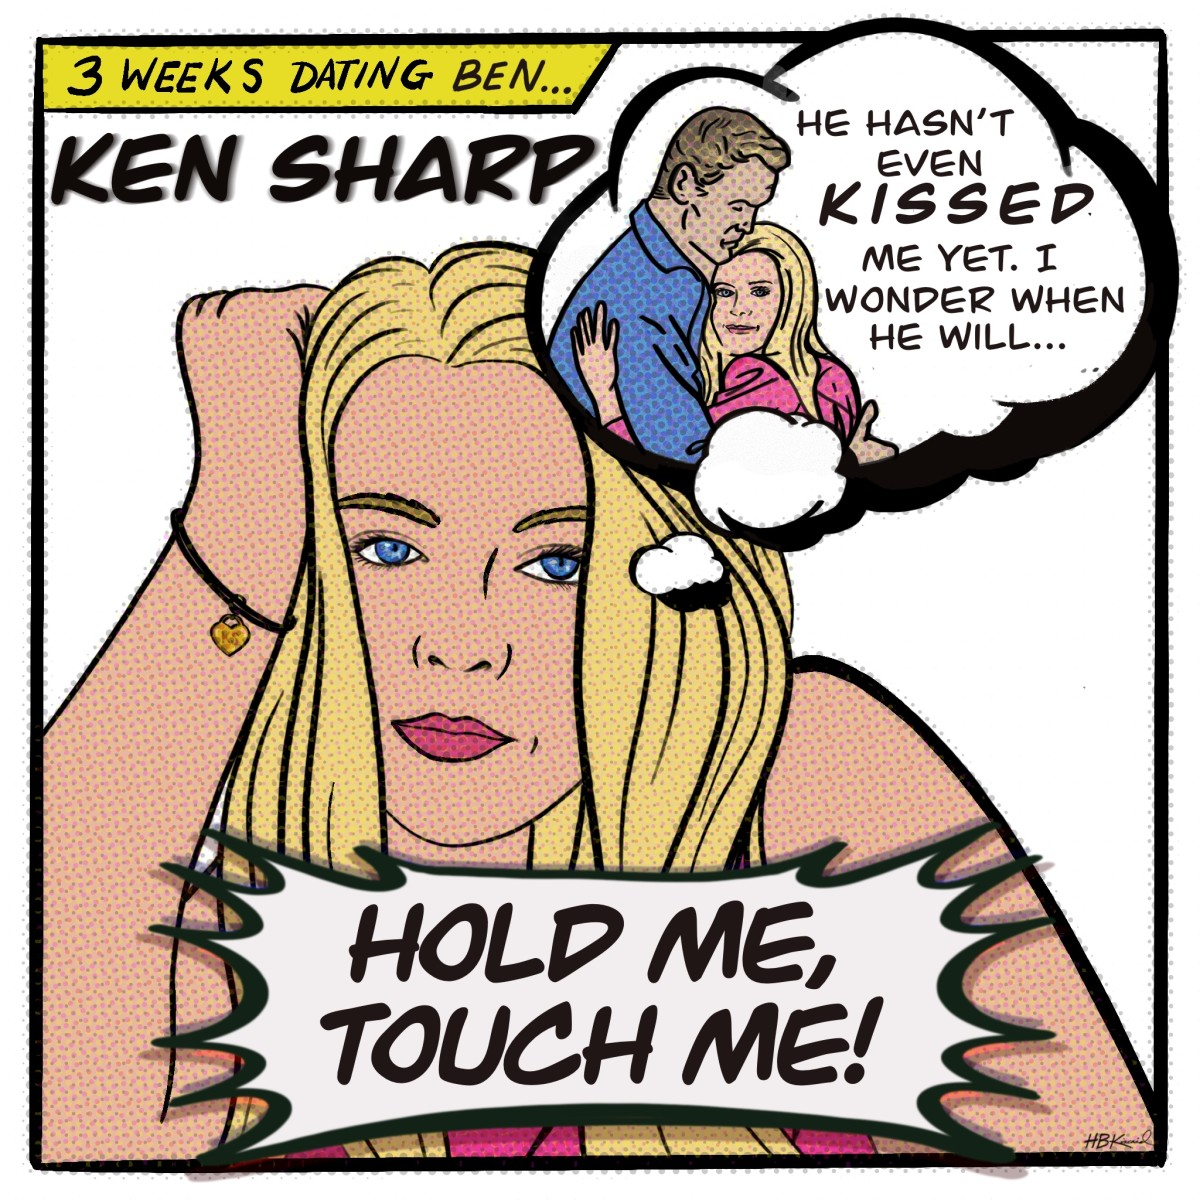 KEN SHARP HOLD ME TOUCH ME